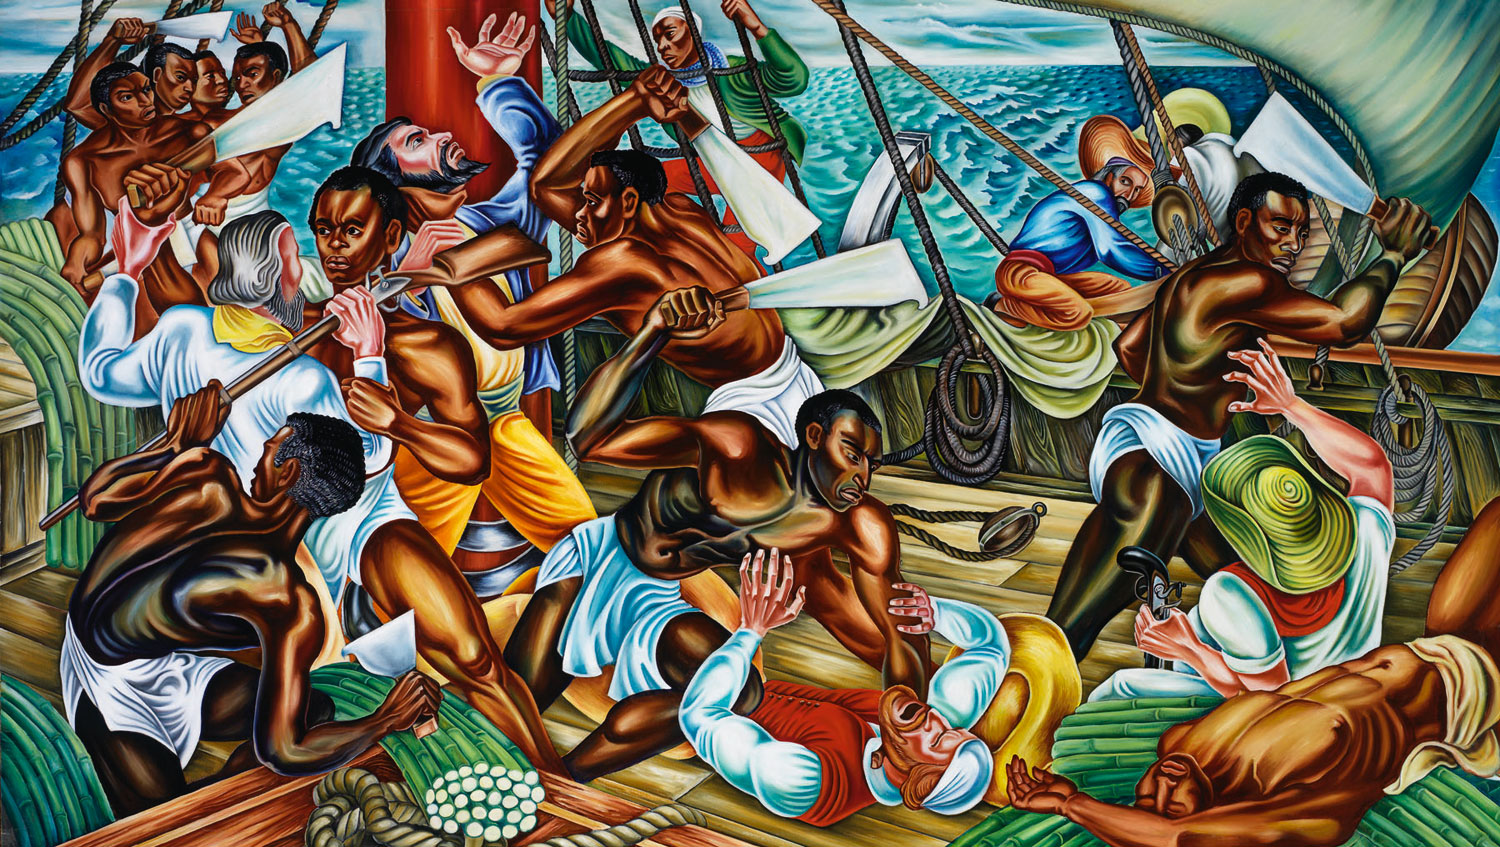 reading melville in post 9 11 america the nation hale woodruff s mural mutiny on the amistad 1939 courtesy of talladega college alabama